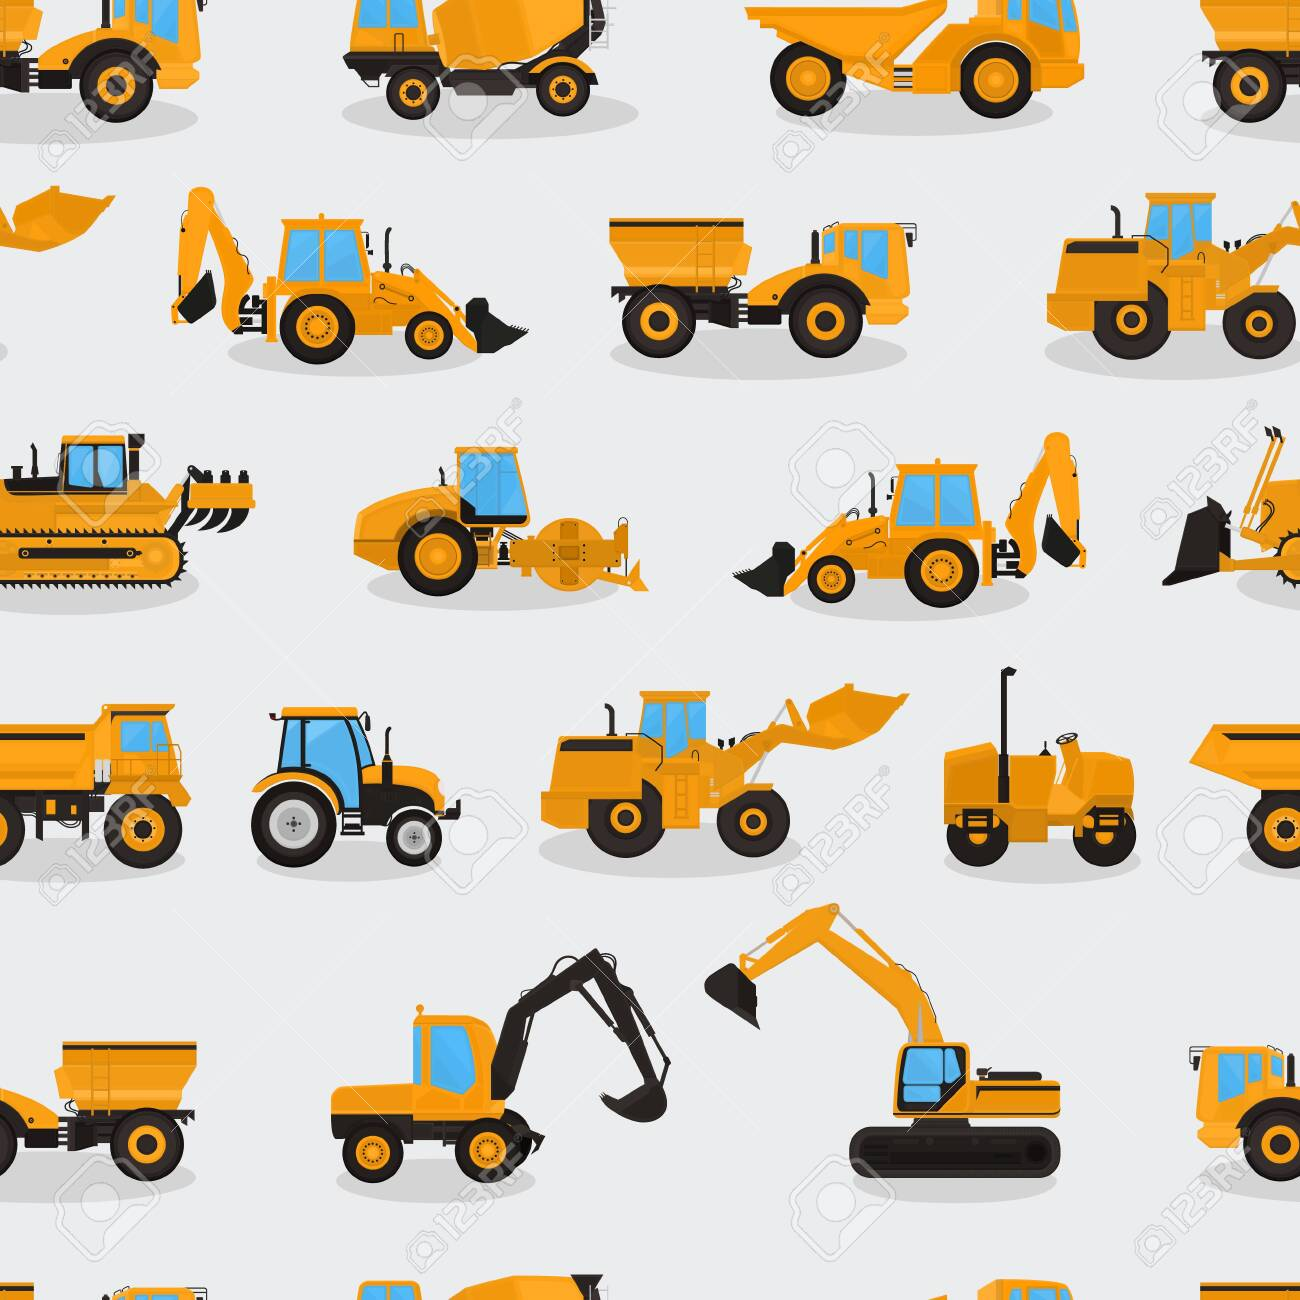 Seamless vector pattern with work machines and equipment on a light background. - 154502852